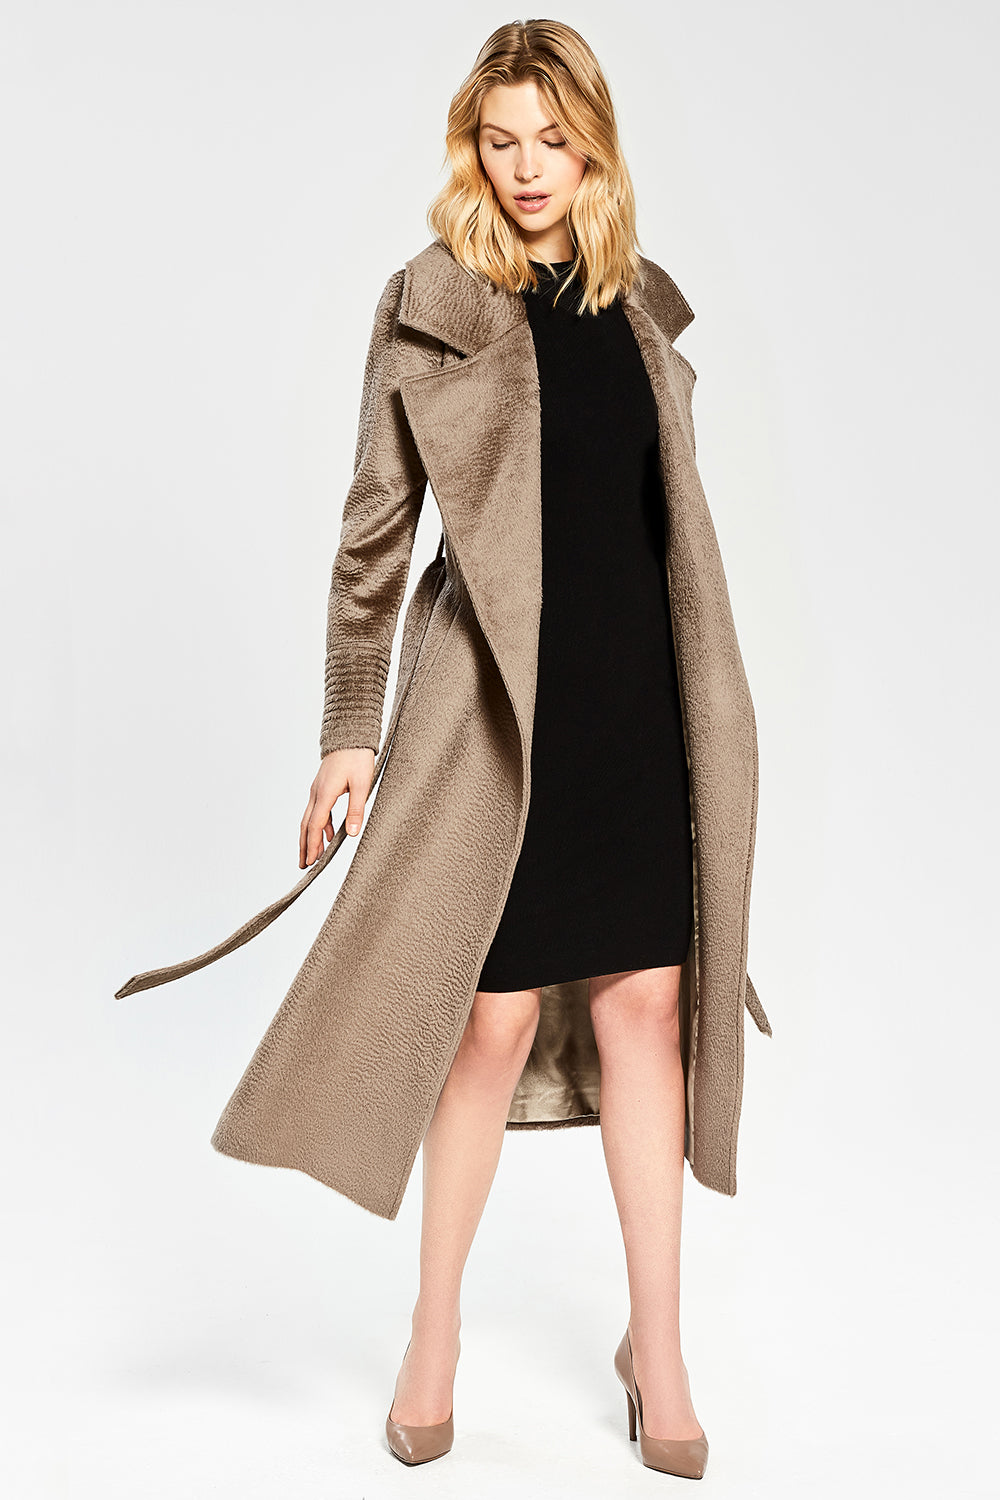 Sentaler Suri Alpaca Long Notched Collar Wrap Coat featured in Suri Alpaca and available in Hazelnut. Seen open.